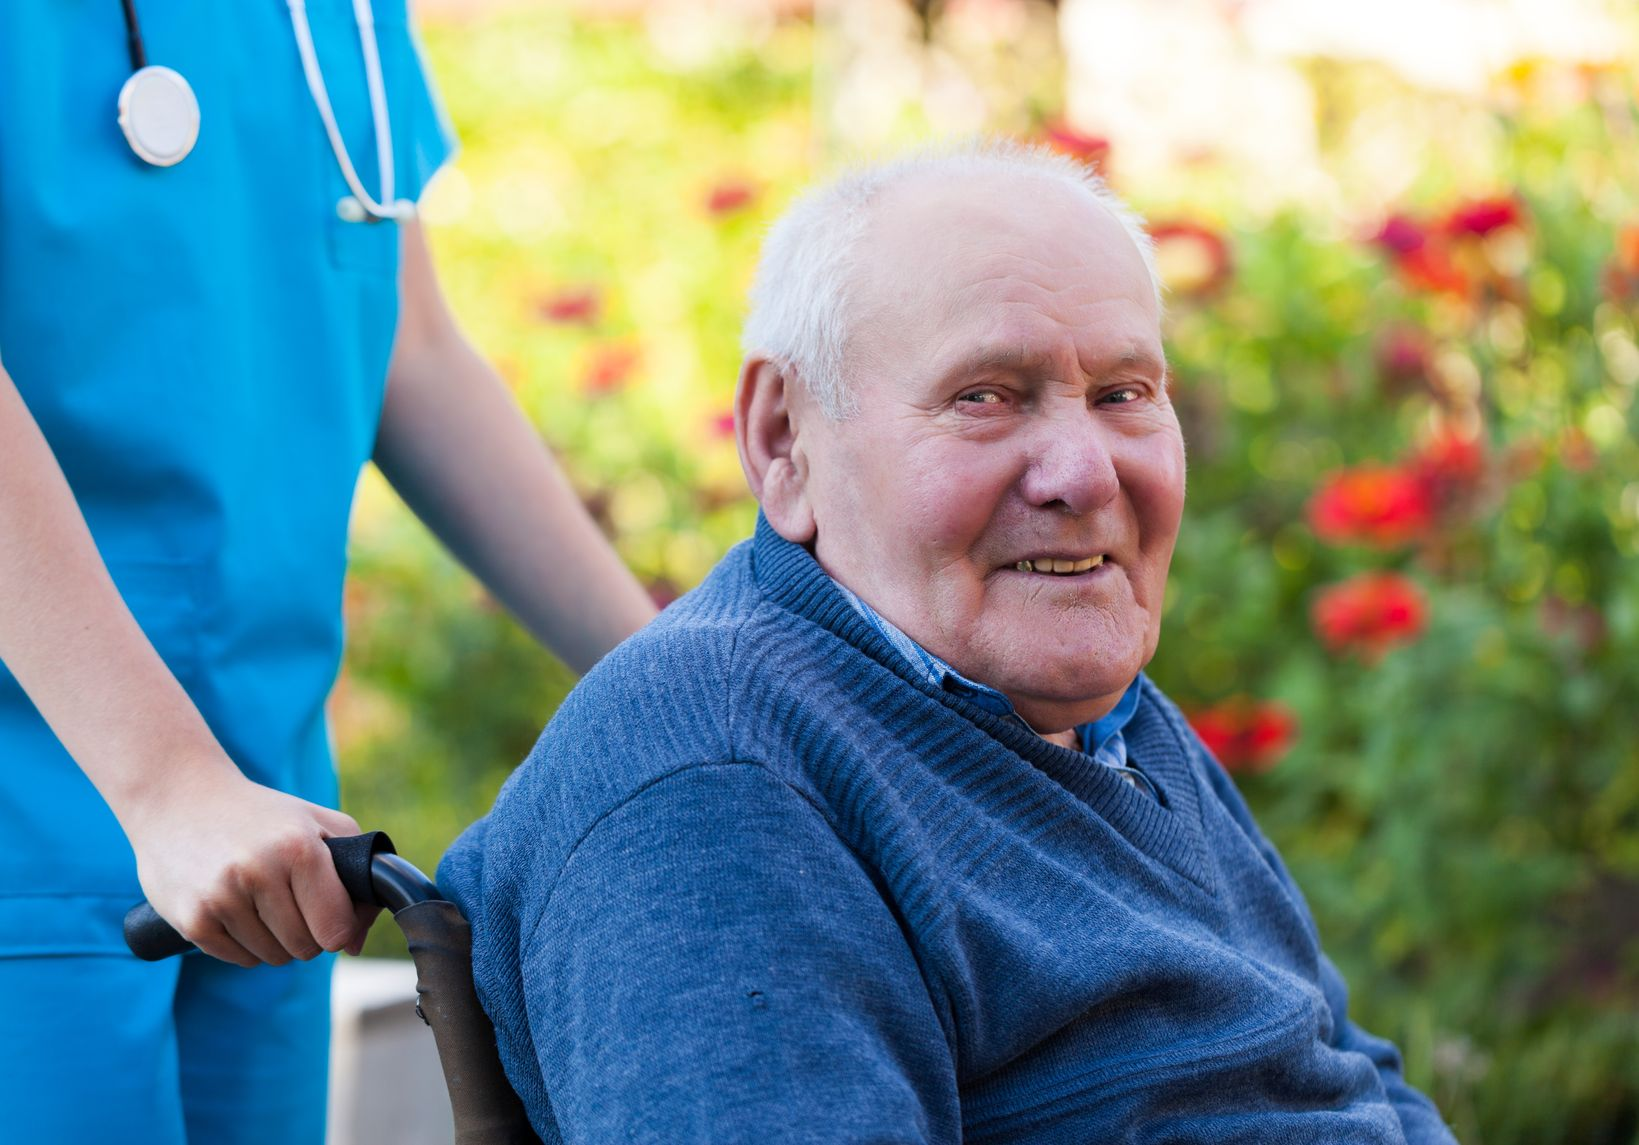 HPS Pharmacy Care home services